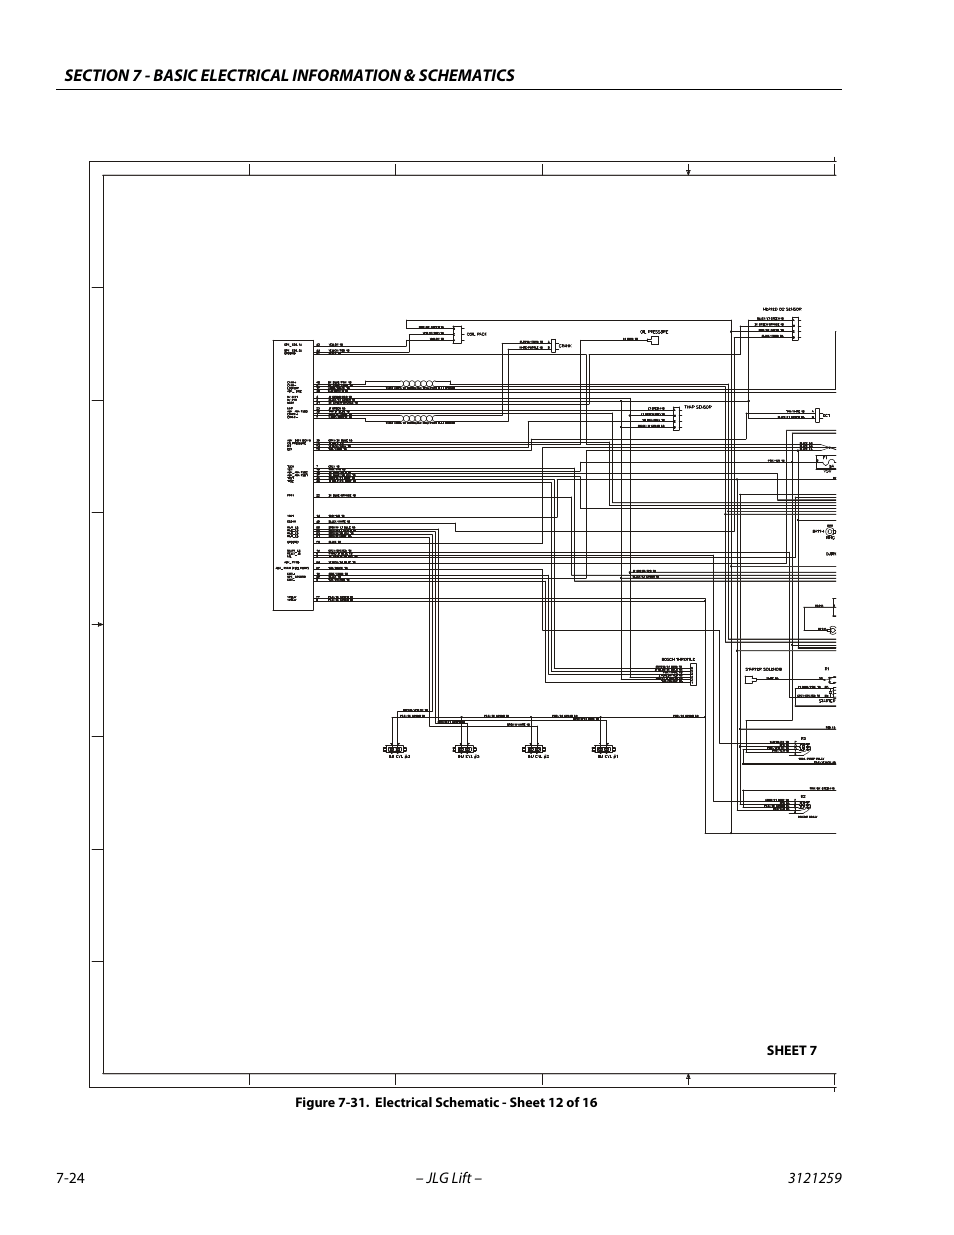 medium resolution of electrical schematic sheet 12 of 16 24 gm engine harness jlgelectrical schematic sheet 12 of